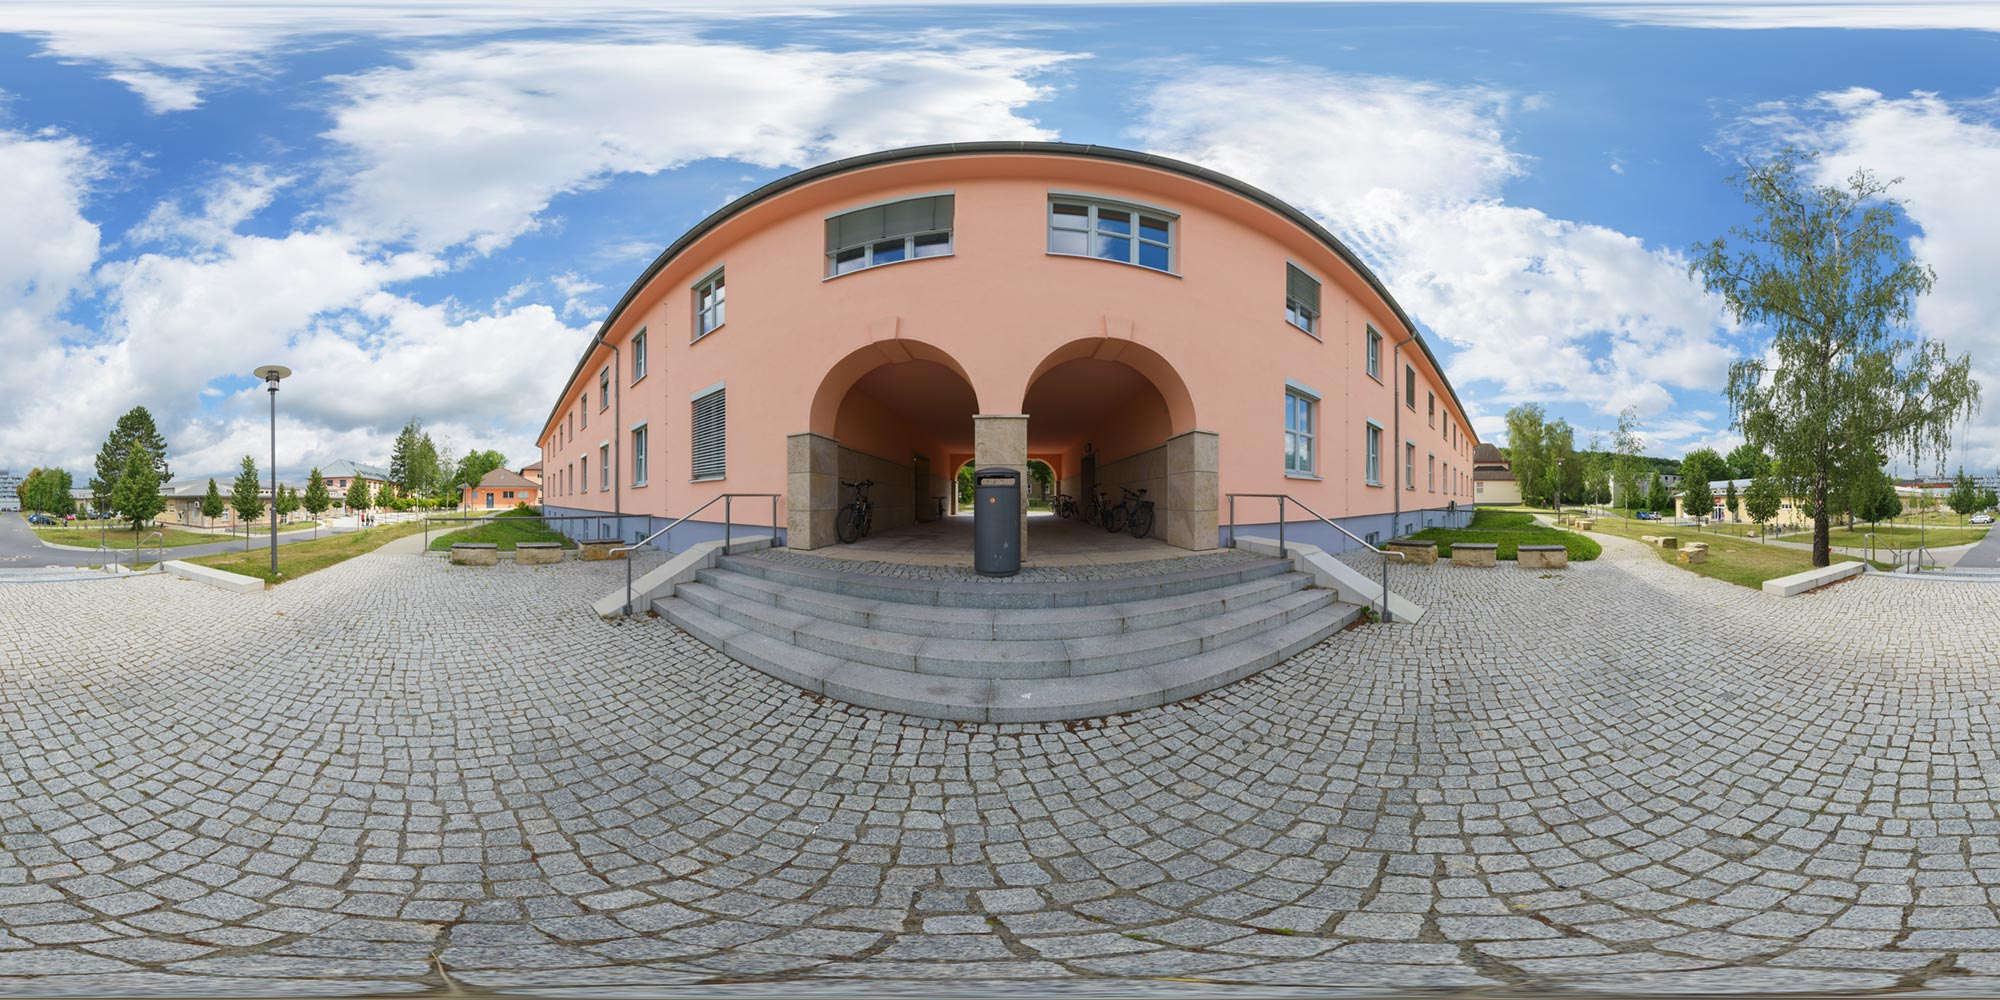 Panorama  Universität Golm - Torbogen